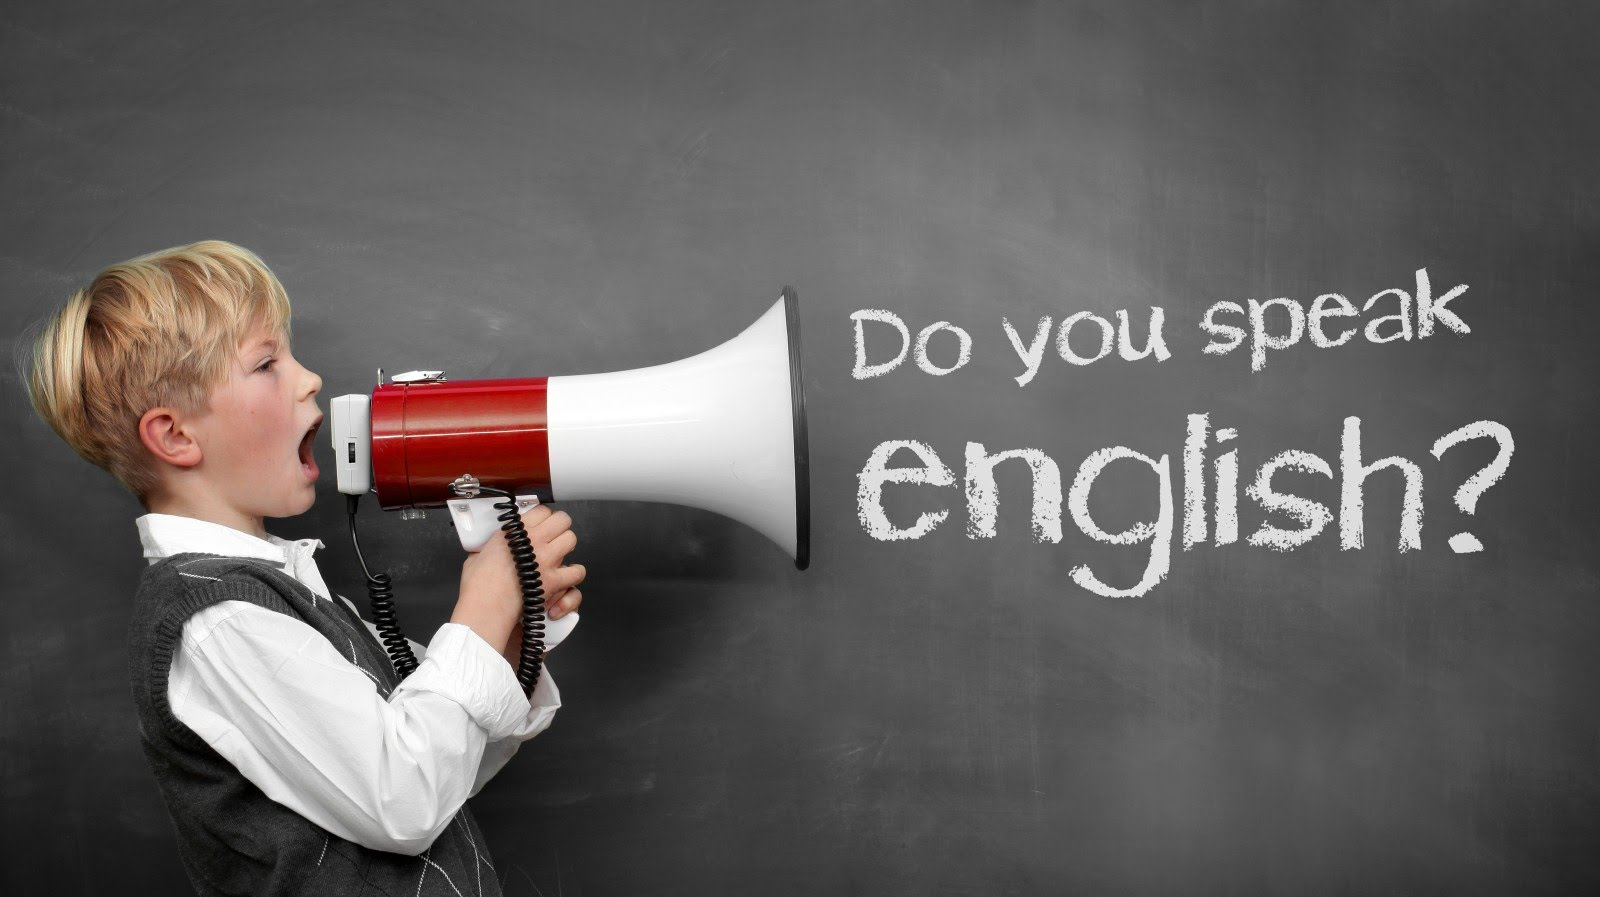 An English Speaking Environment Highly Improves English Skills